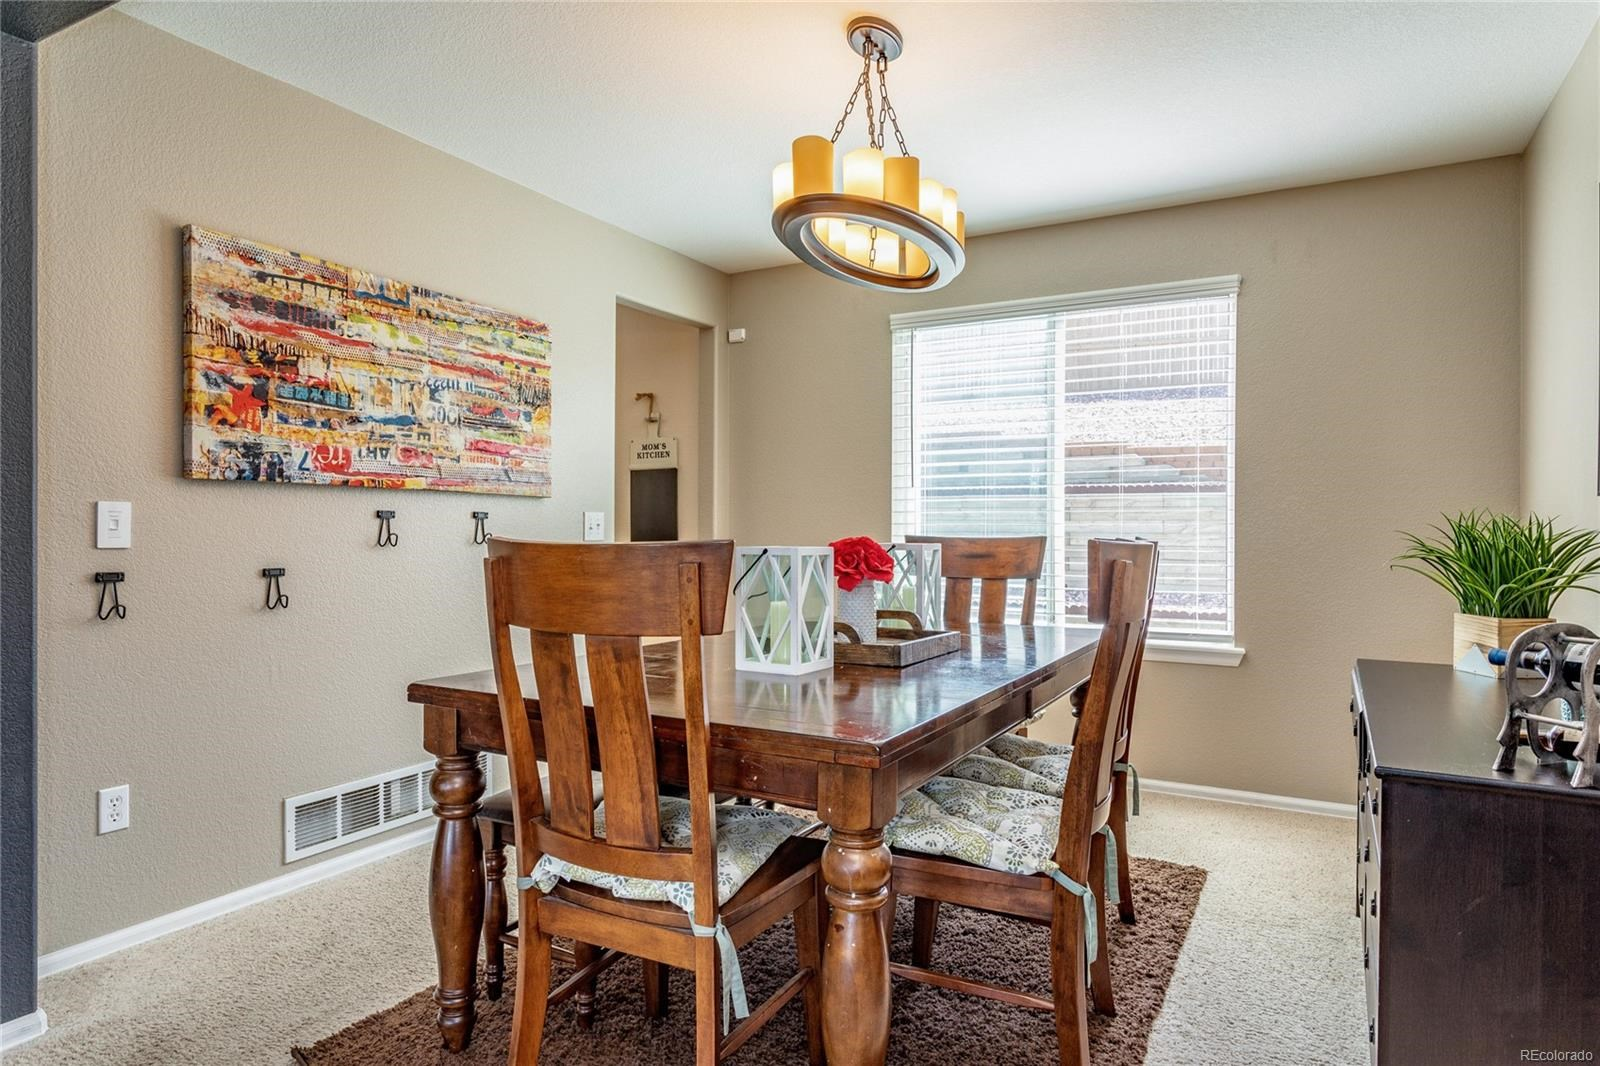 MLS# 3396693 - 8 - 6084 S Zante Way, Aurora, CO 80015